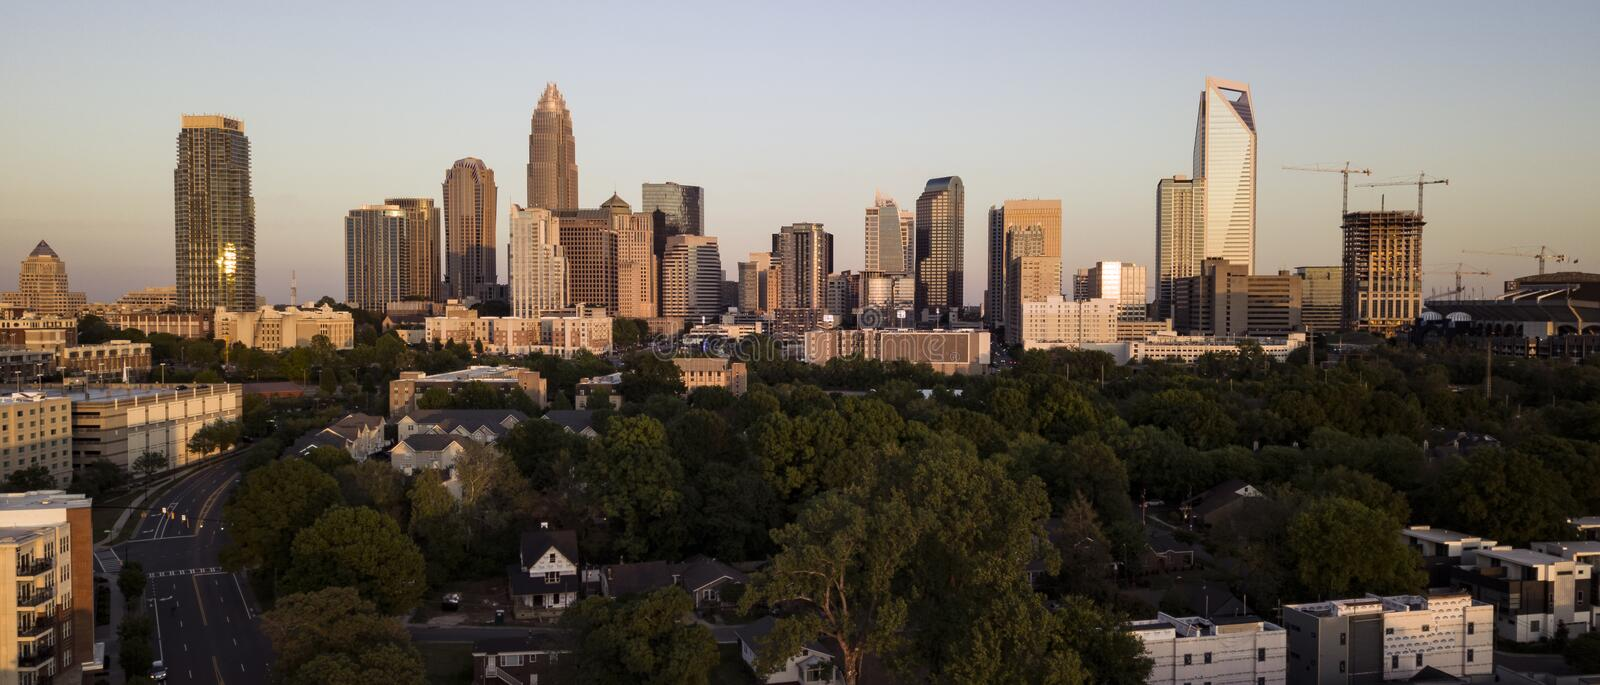 Aerial View of the Downtown City Skyline of Charlotte North Carolina royalty free stock photography